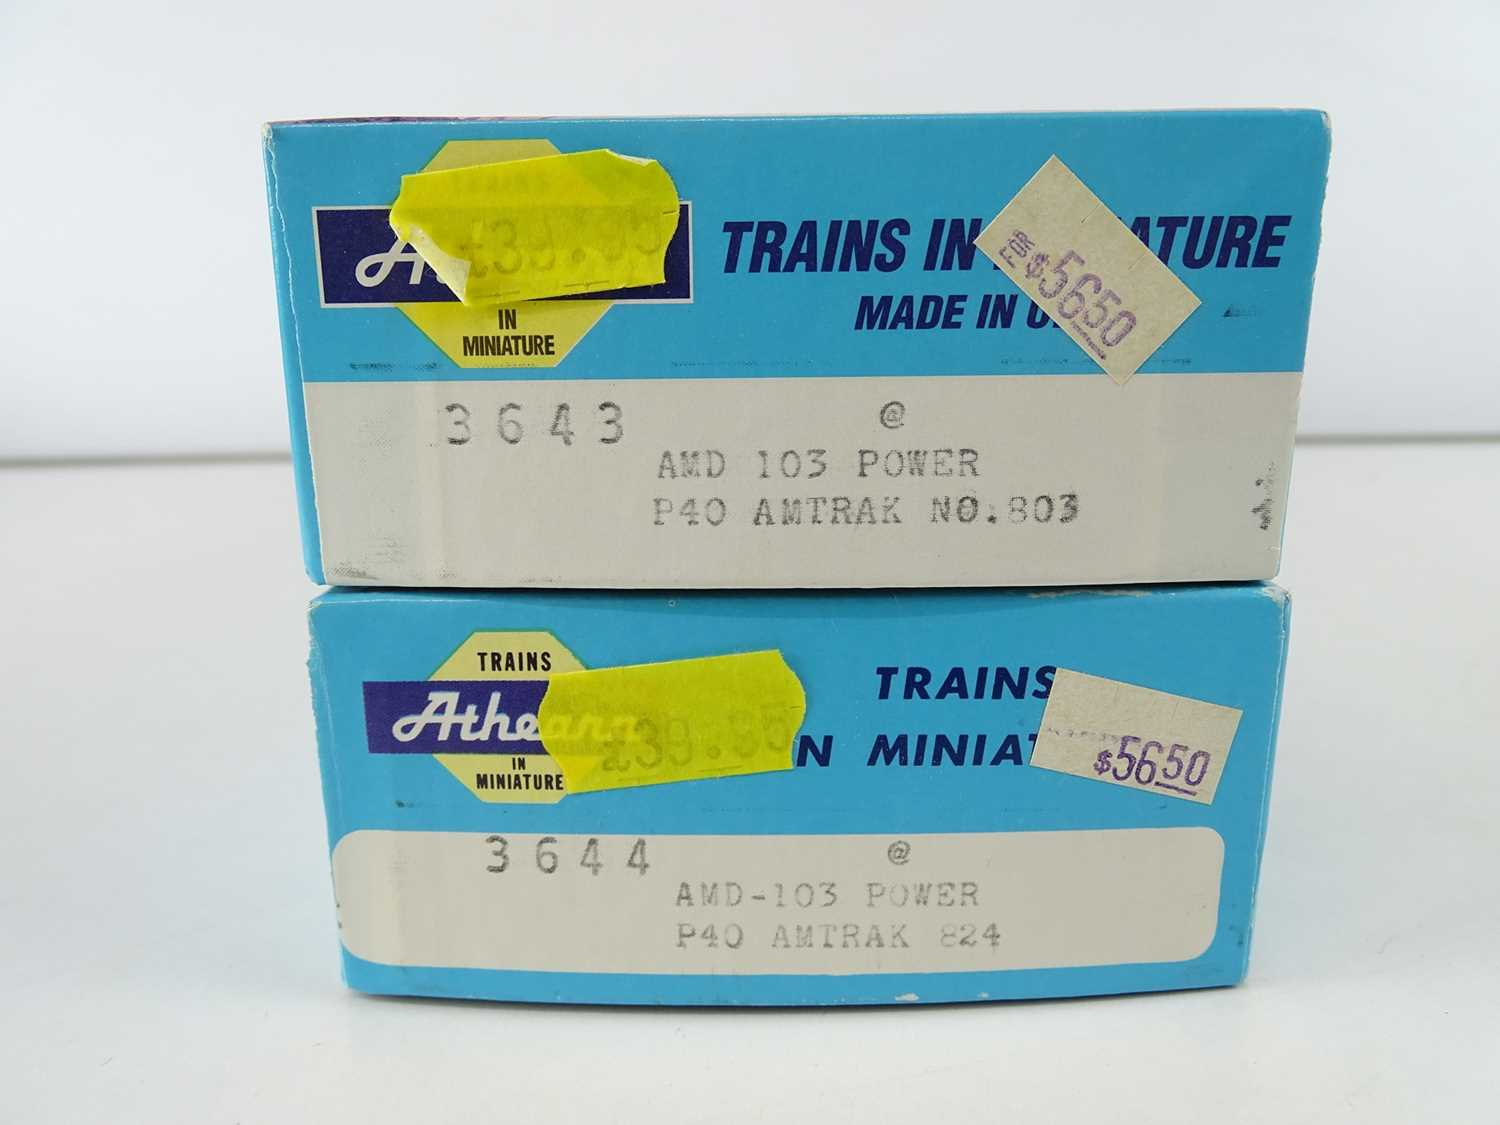 A pair of ATHEARN kit built HO Gauge American Outline 3643 and 3644 AMD-103 P40 Power Cars in Amtrak - Image 2 of 2